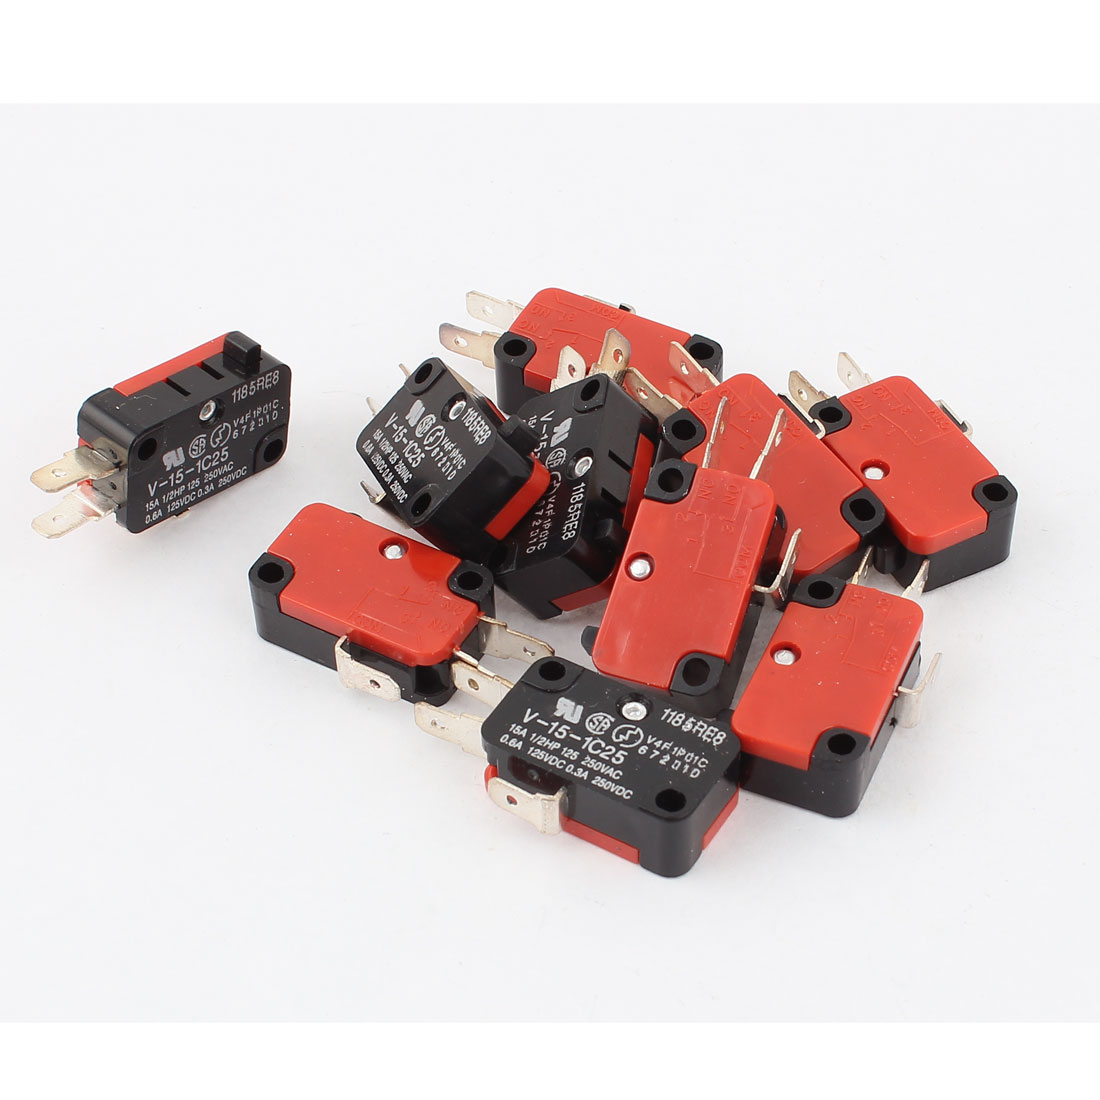 10Pcs AC250V/125V 15A DC125/250V 0.6A 0.3A Snap Action Push Button SPDT Momentary Micro Limit Switch